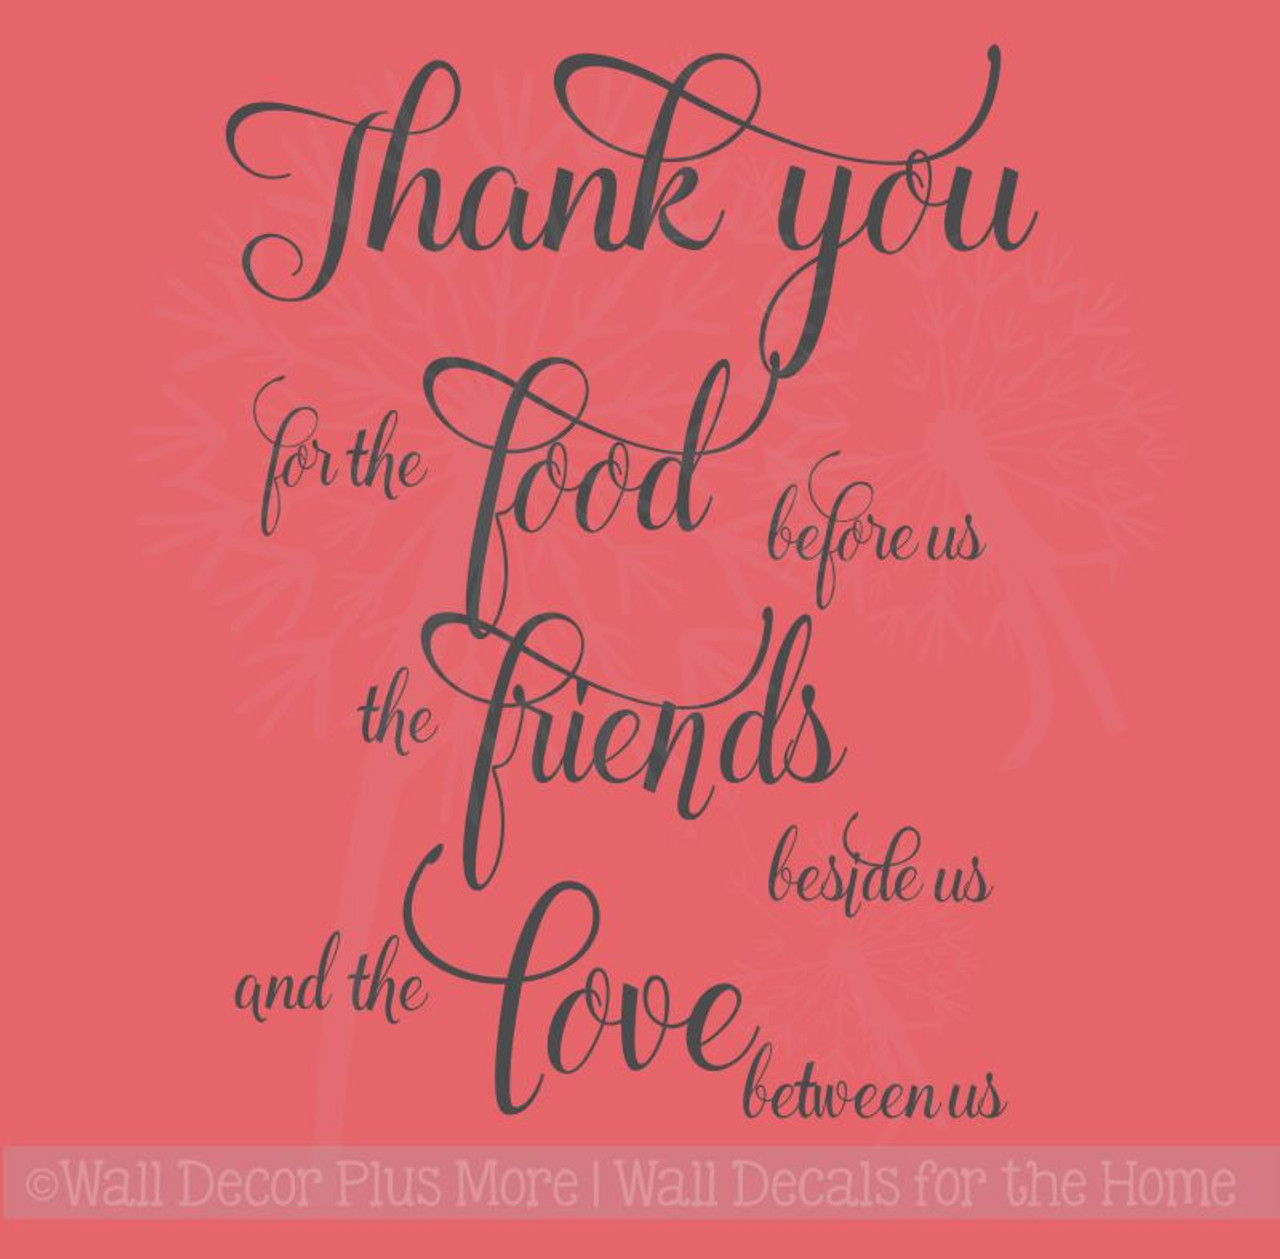 thank you for the food friends love kitchen sayings wall decal stickers - Kitchen Sayings